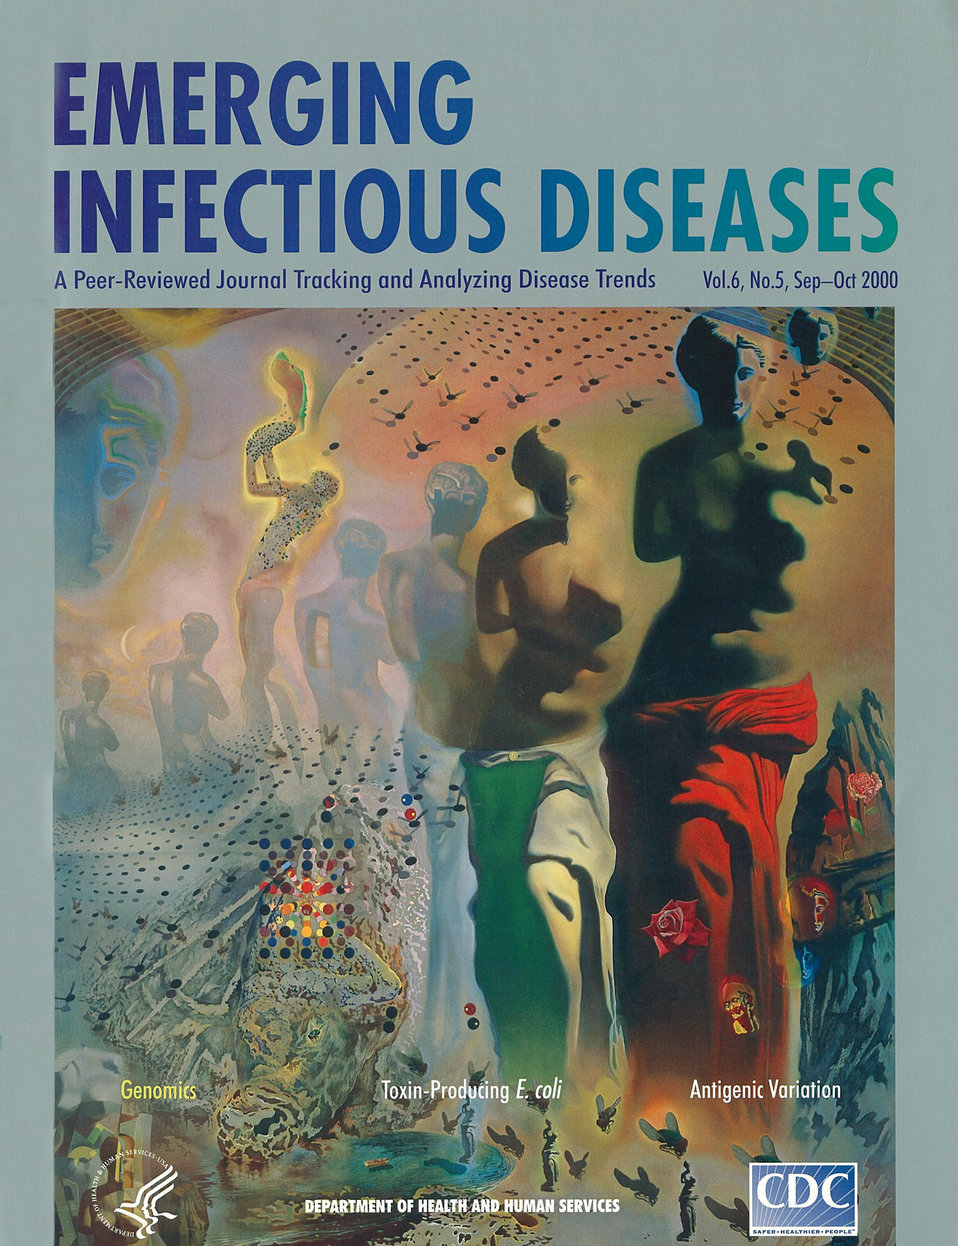 Emerging Infectious Diseases (EID) cover artwork for Volume 6, Number 5, September-October 2000 issue.